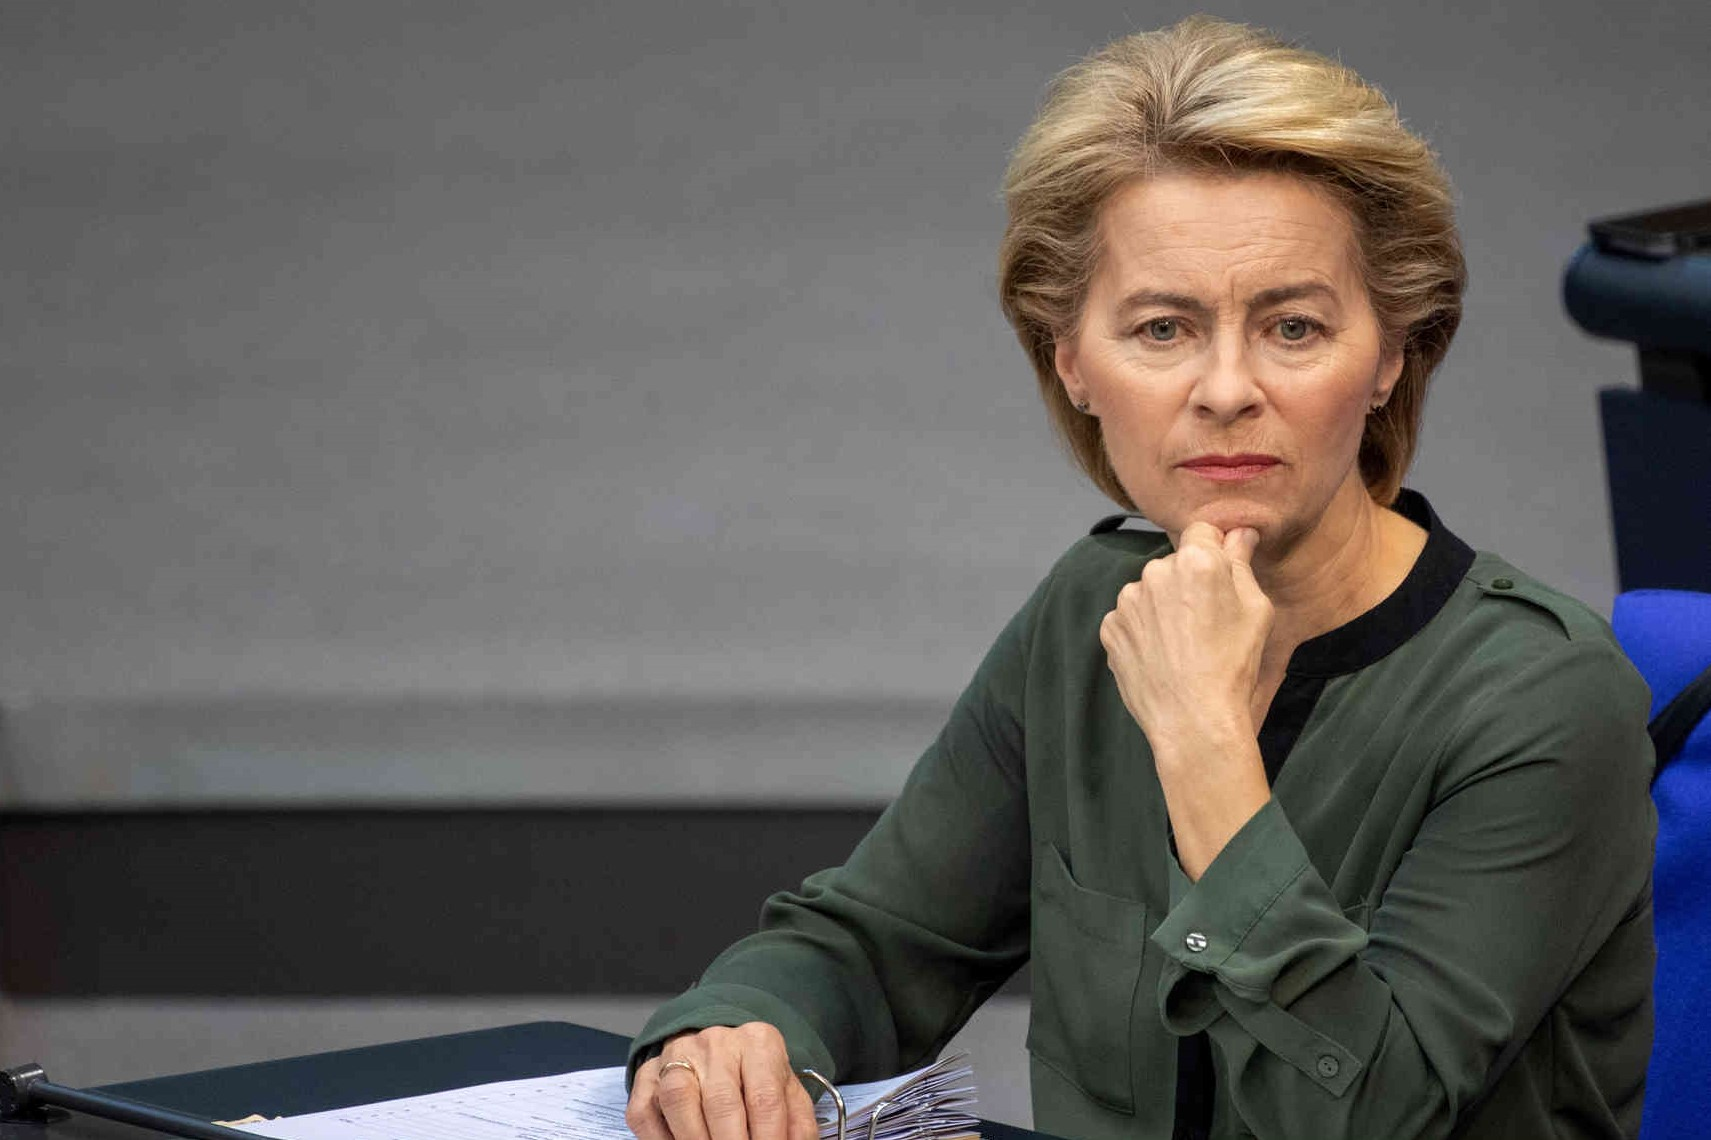 Will Ursula von der Leyen be approved as EU commission president?